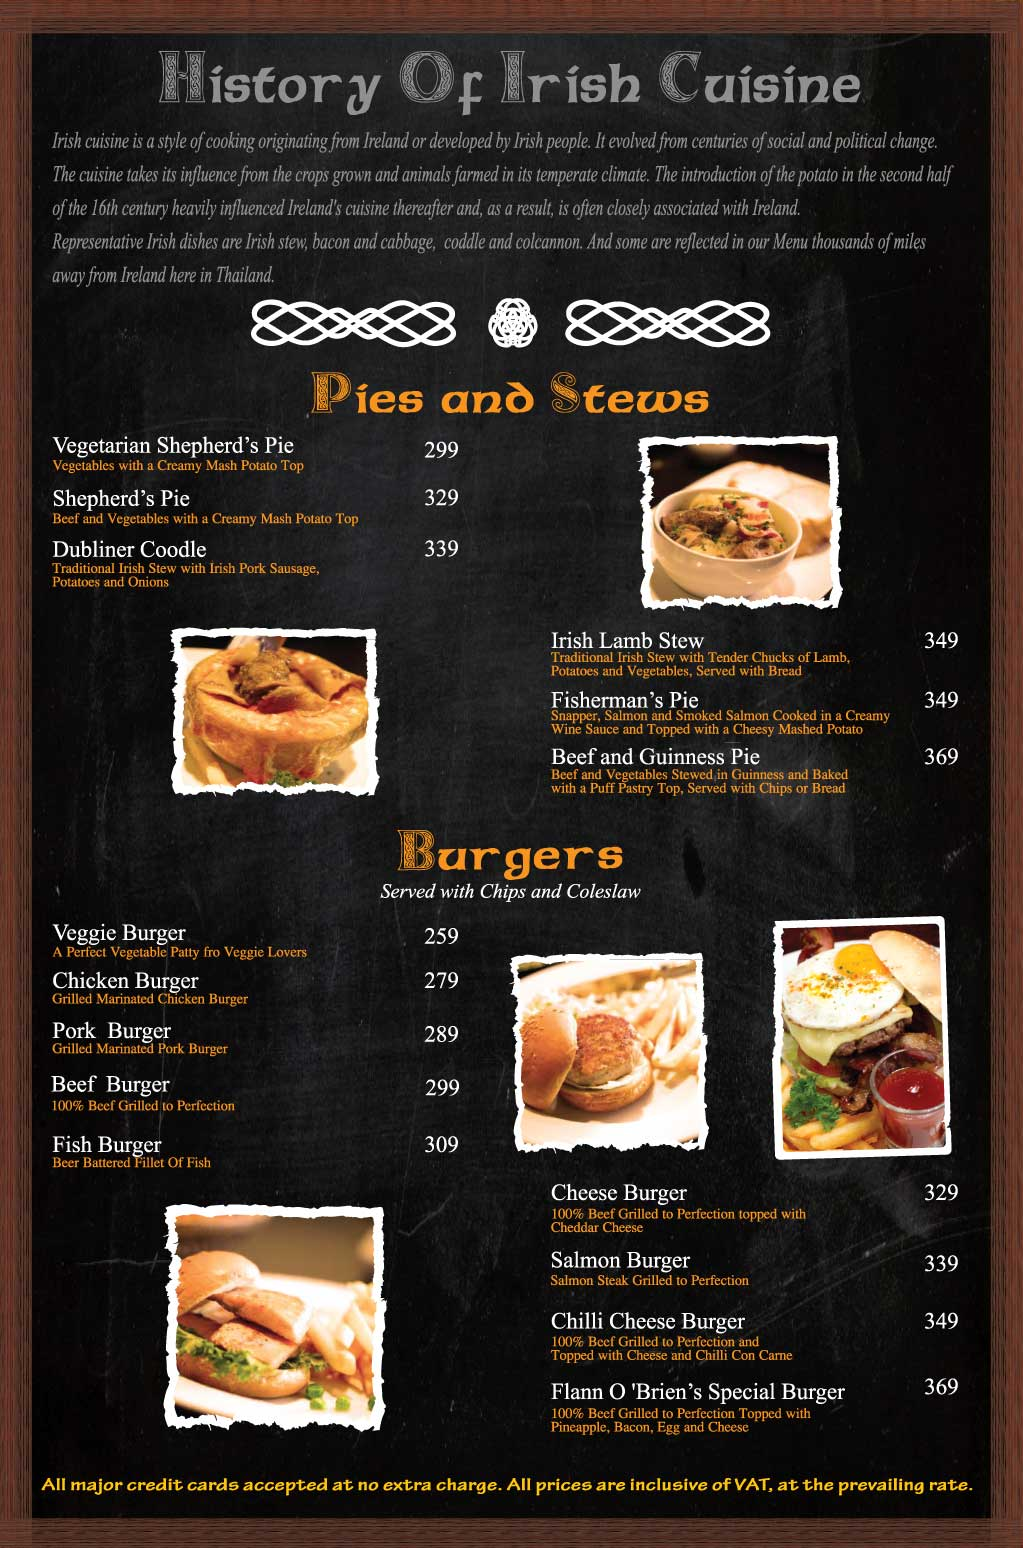 Flann Silom Food Menu Pies Stews Burgers